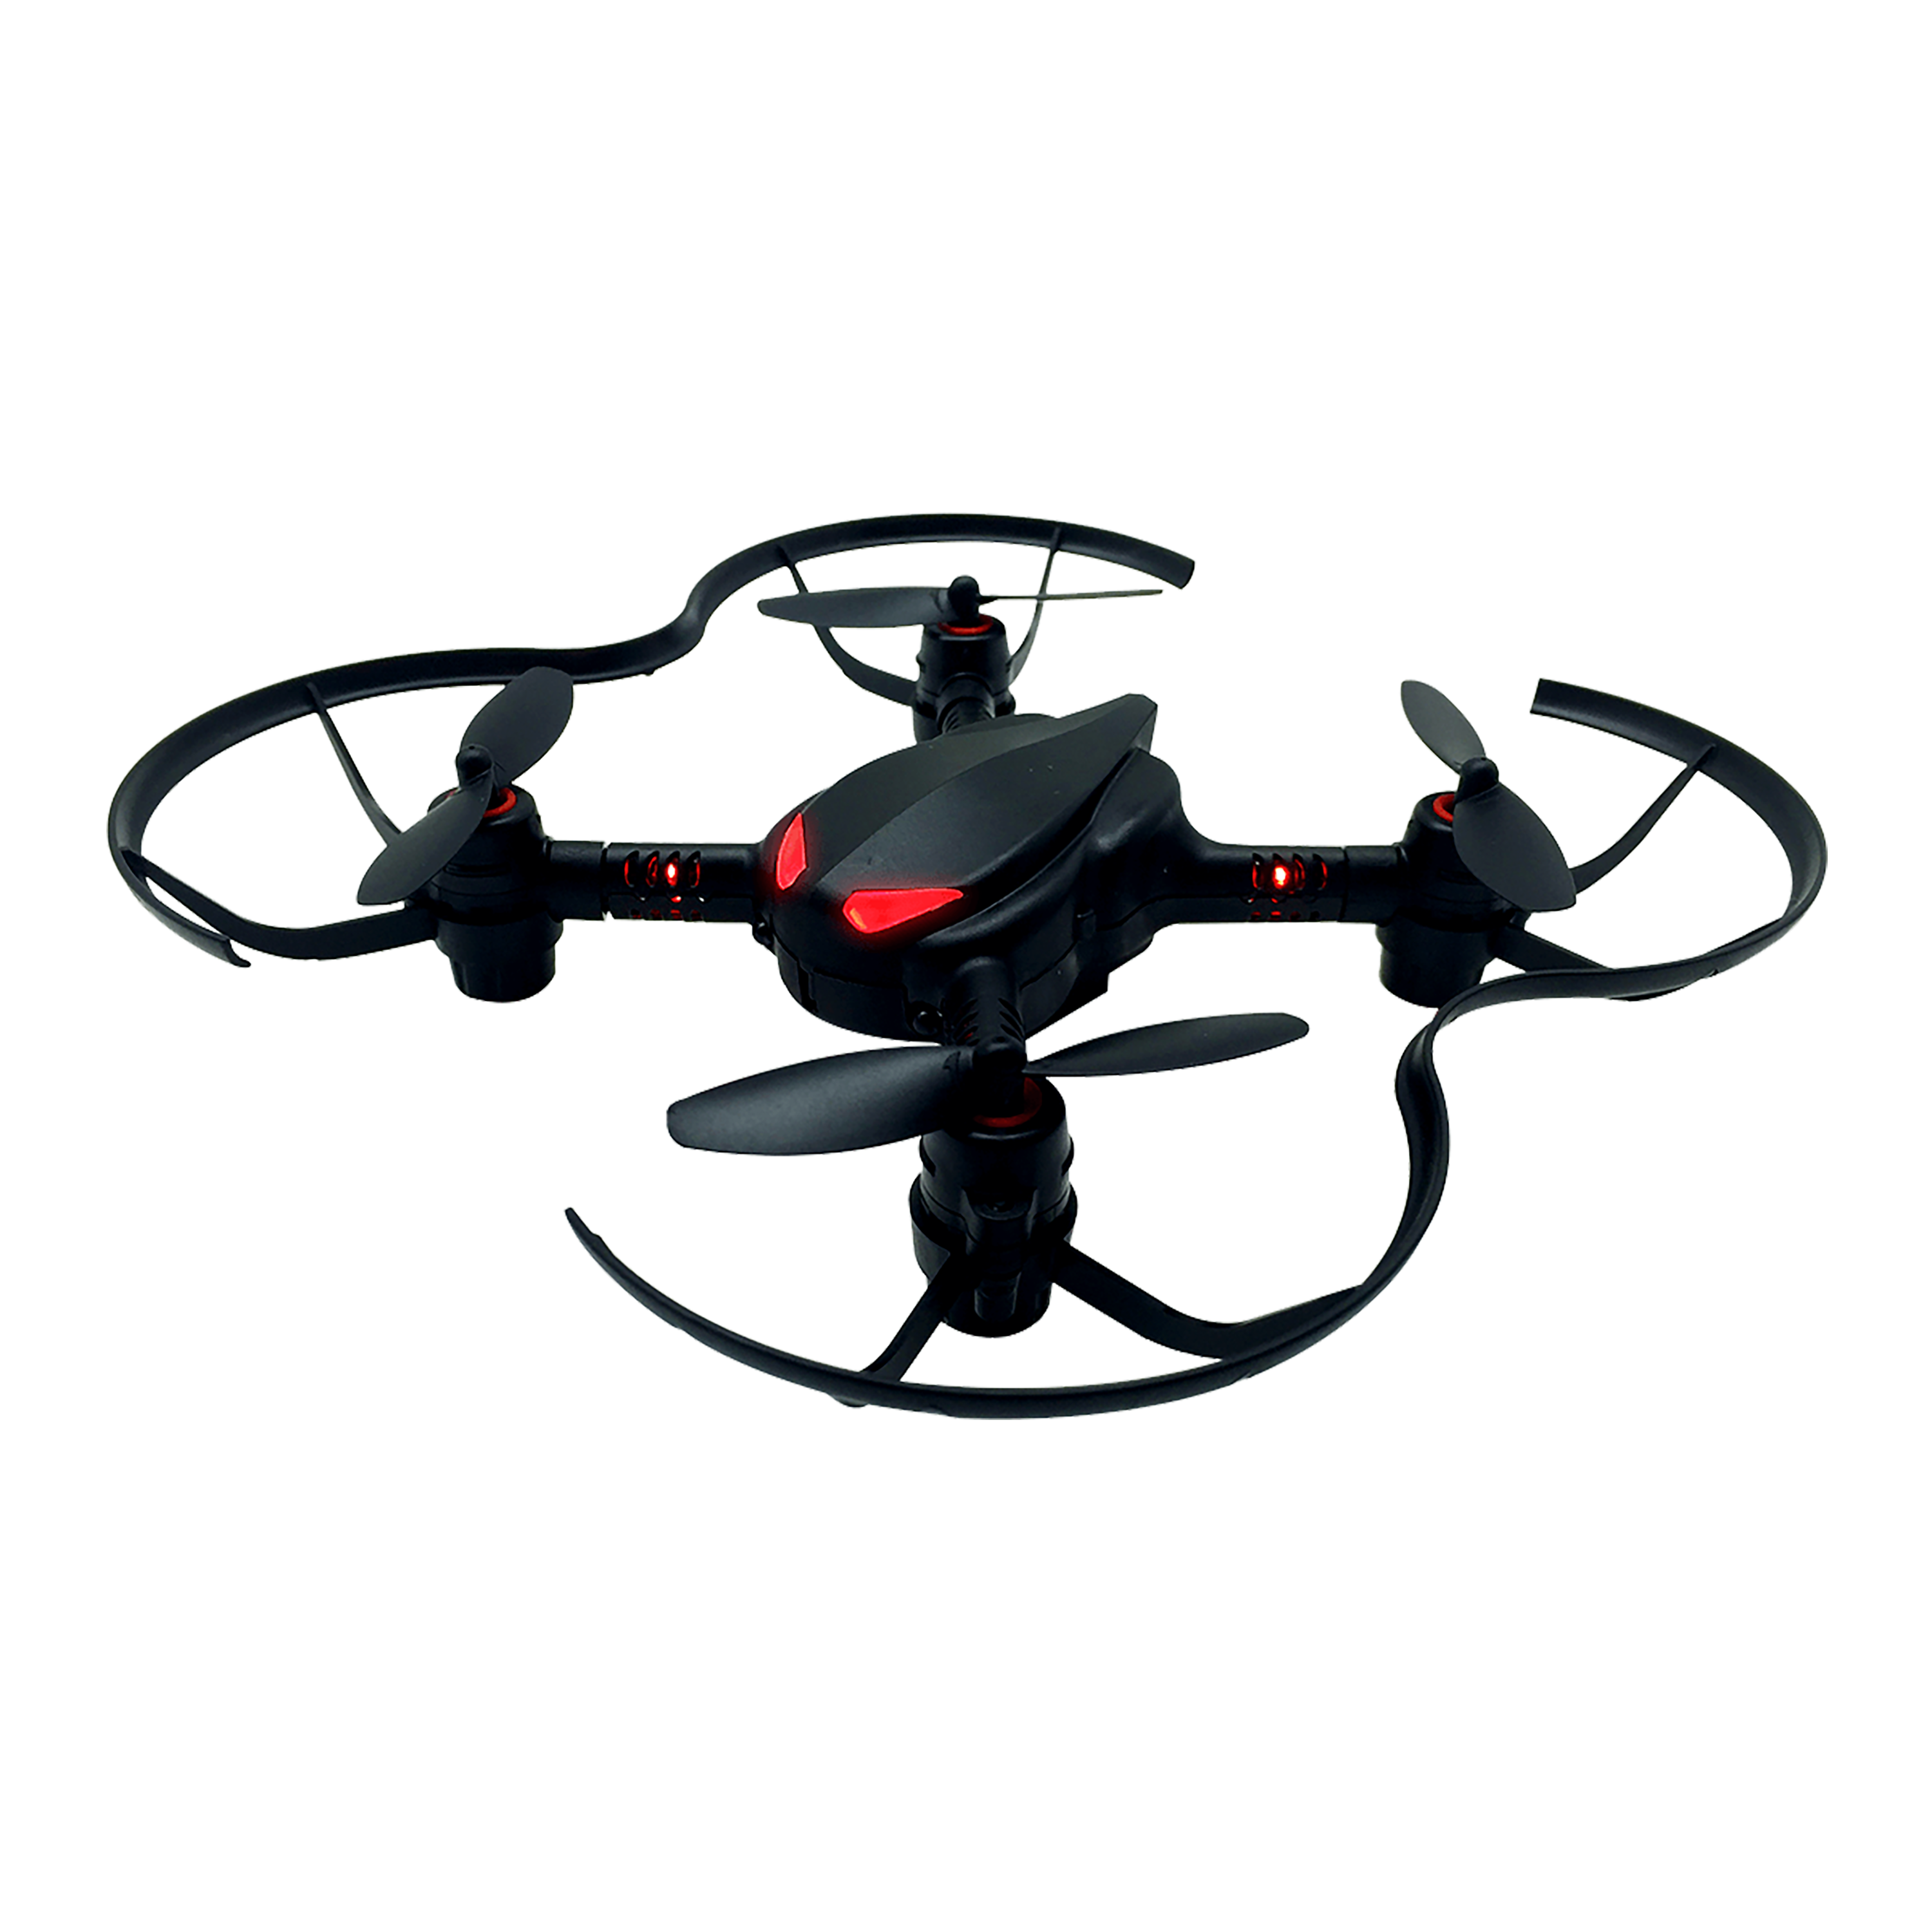 rc camera drones with Drones With Infrared Cameras on Drone  ponents Parts Overview With Tips together with Watch together with Yuneec Typhoon H 4k Hexacopter Drone Pro Version With Realsense 2315 in addition Skyhawk Foldable Camera Quadcopter moreover At Toy Fair 2015 Fun For Kids Of All Ages.